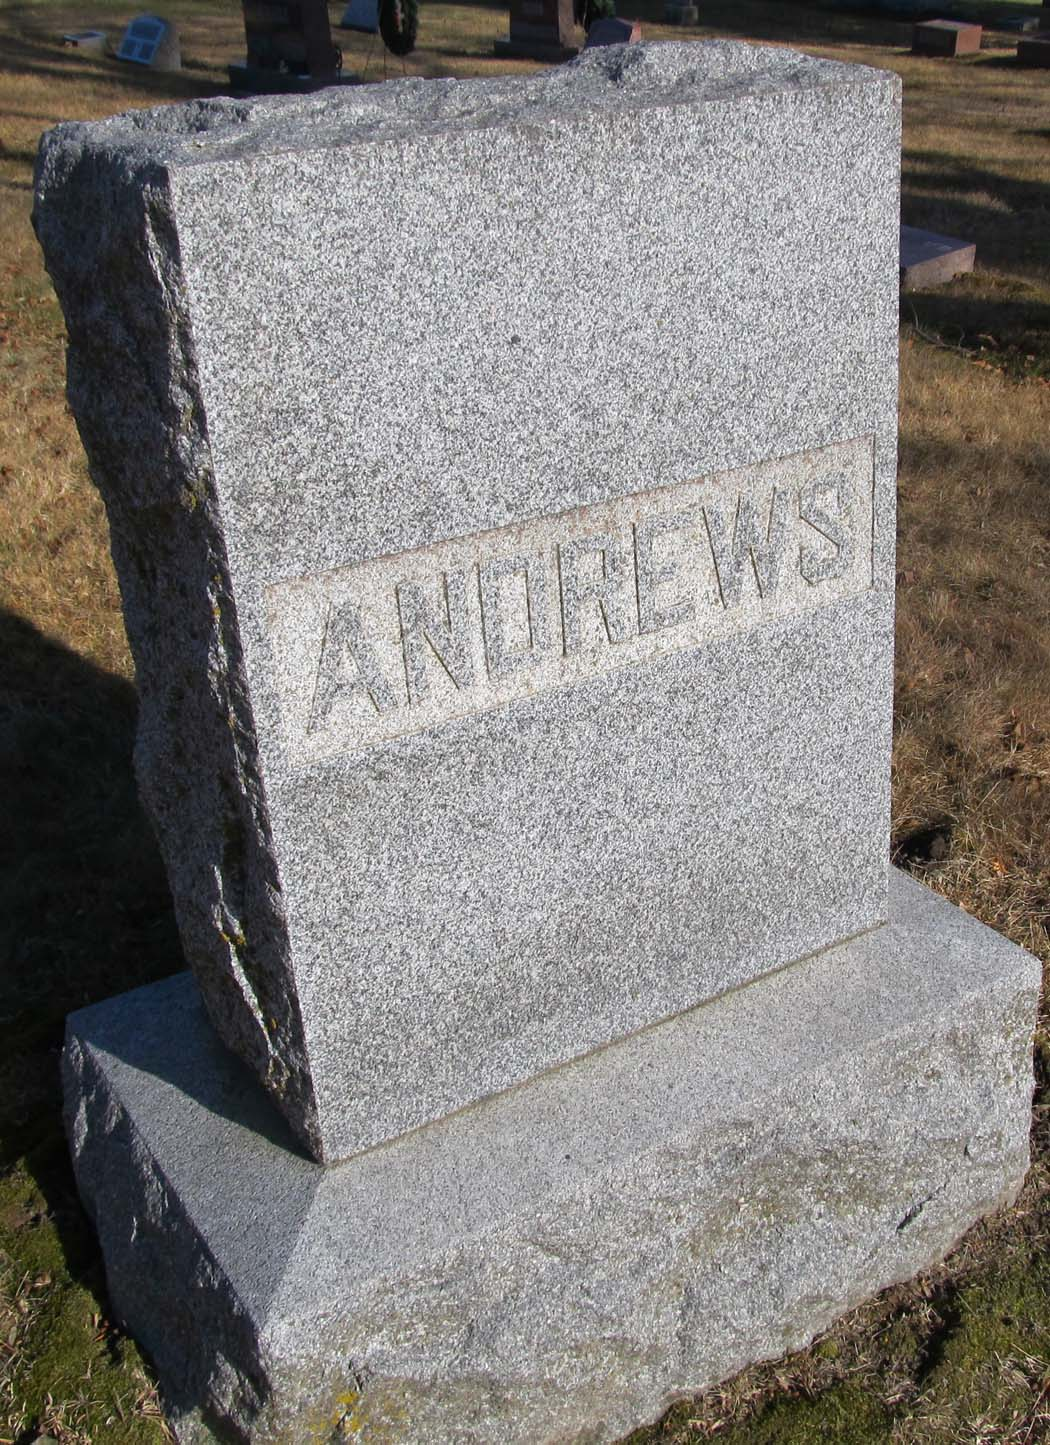 Elvira <i>Barnes</i> Andrews